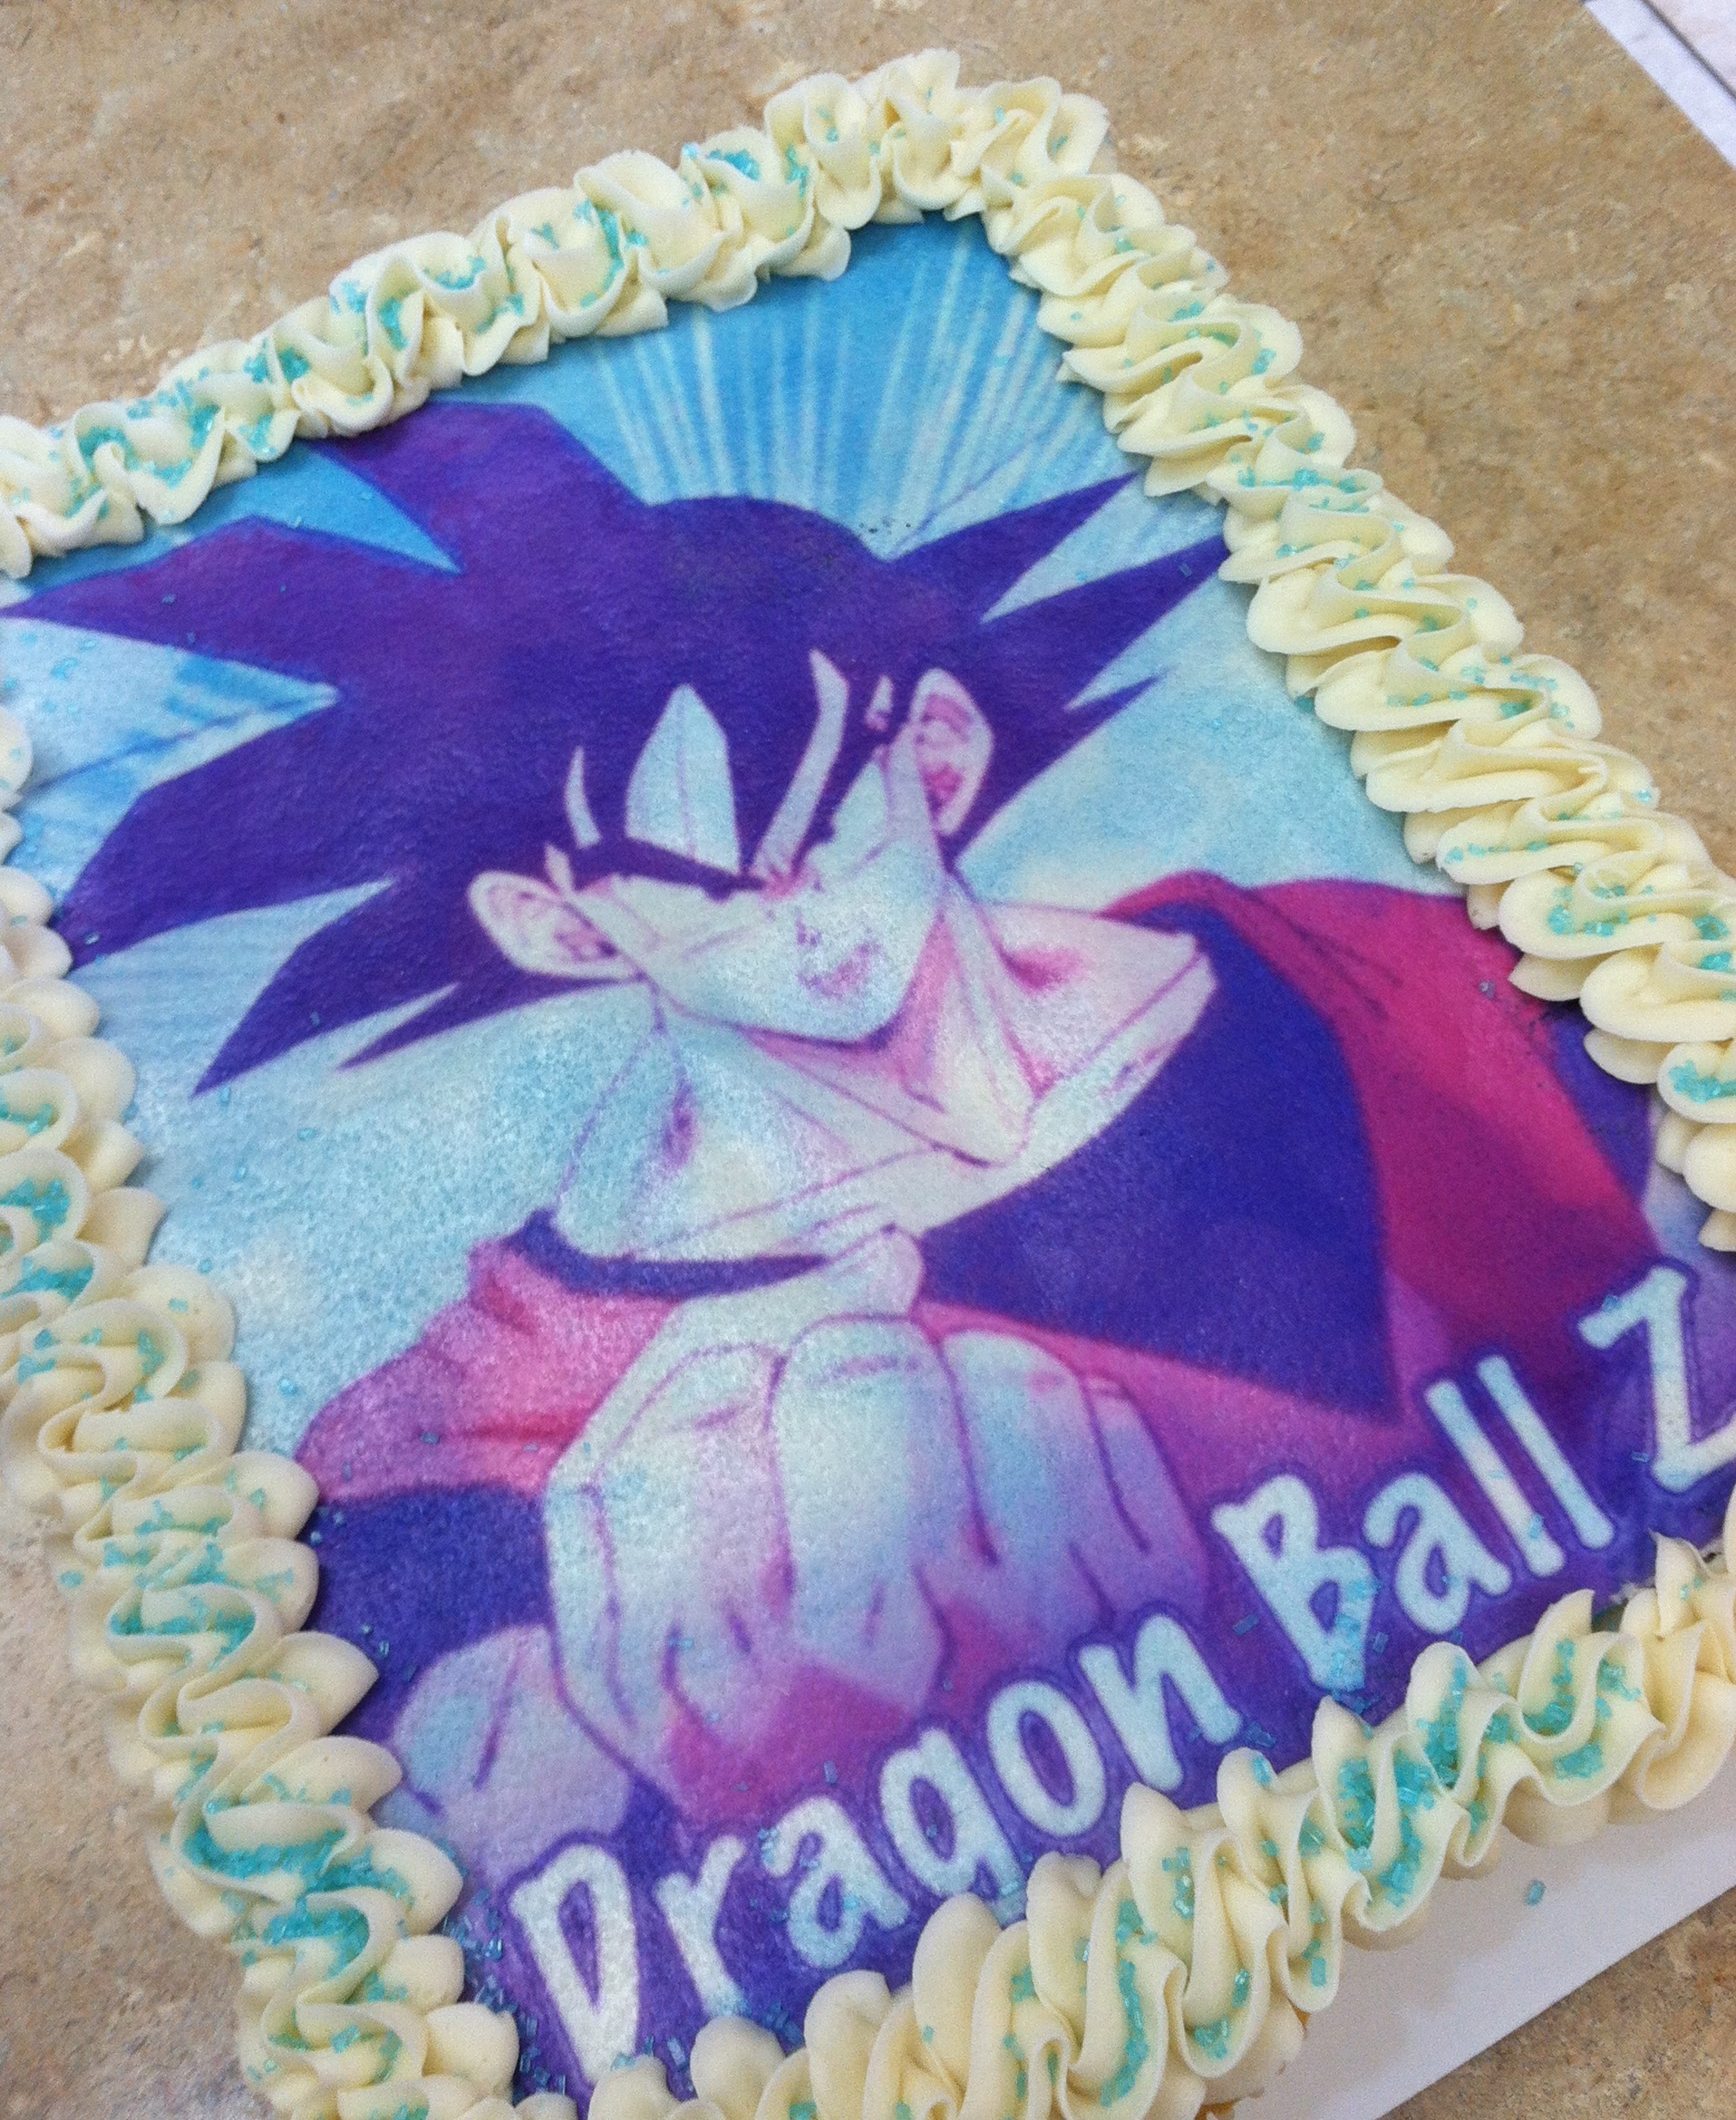 Dragon Ball Z Cupcake Cake